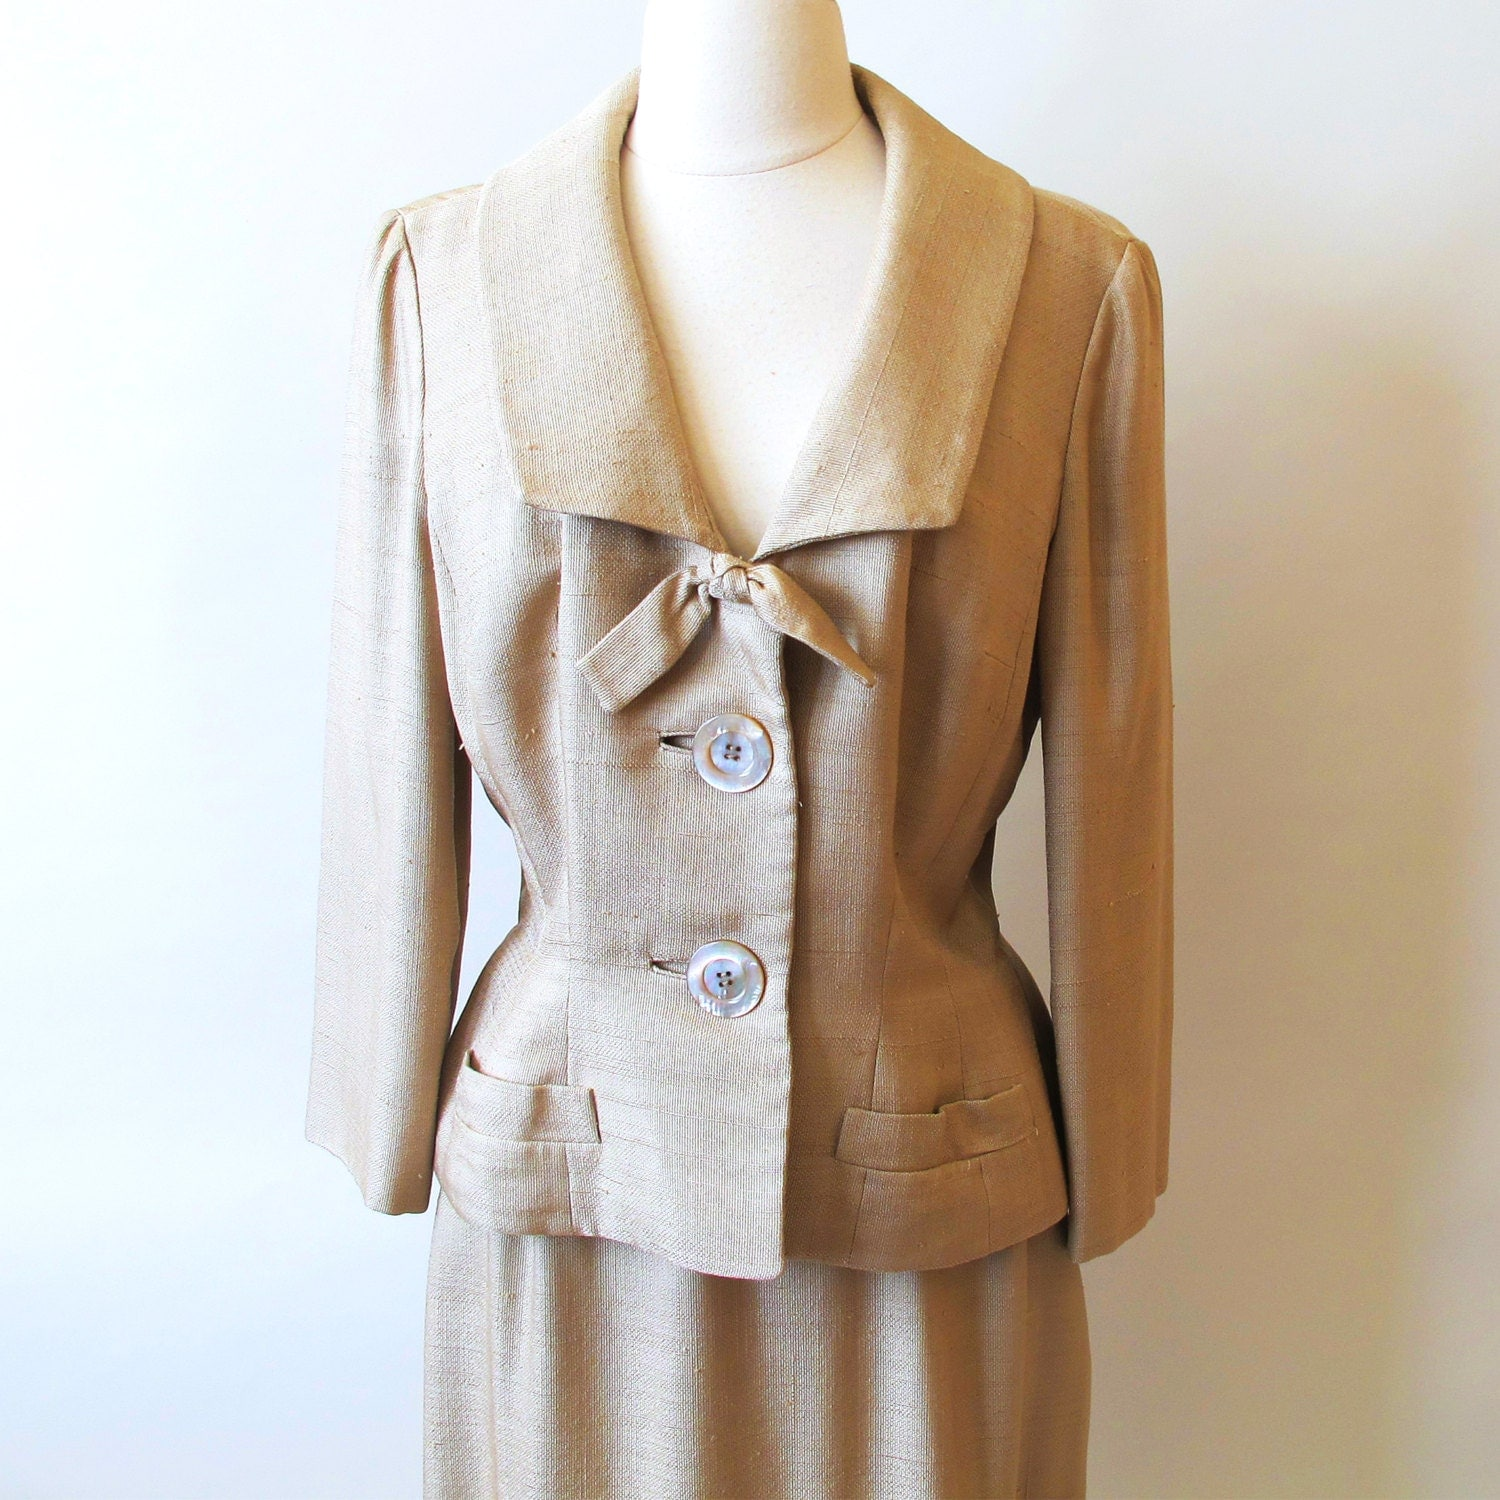 Reserve for Heather / Vintage Womans Suit , 50s suit, Beige Silk 2 Piece Suit by Branell - StraylightVintage